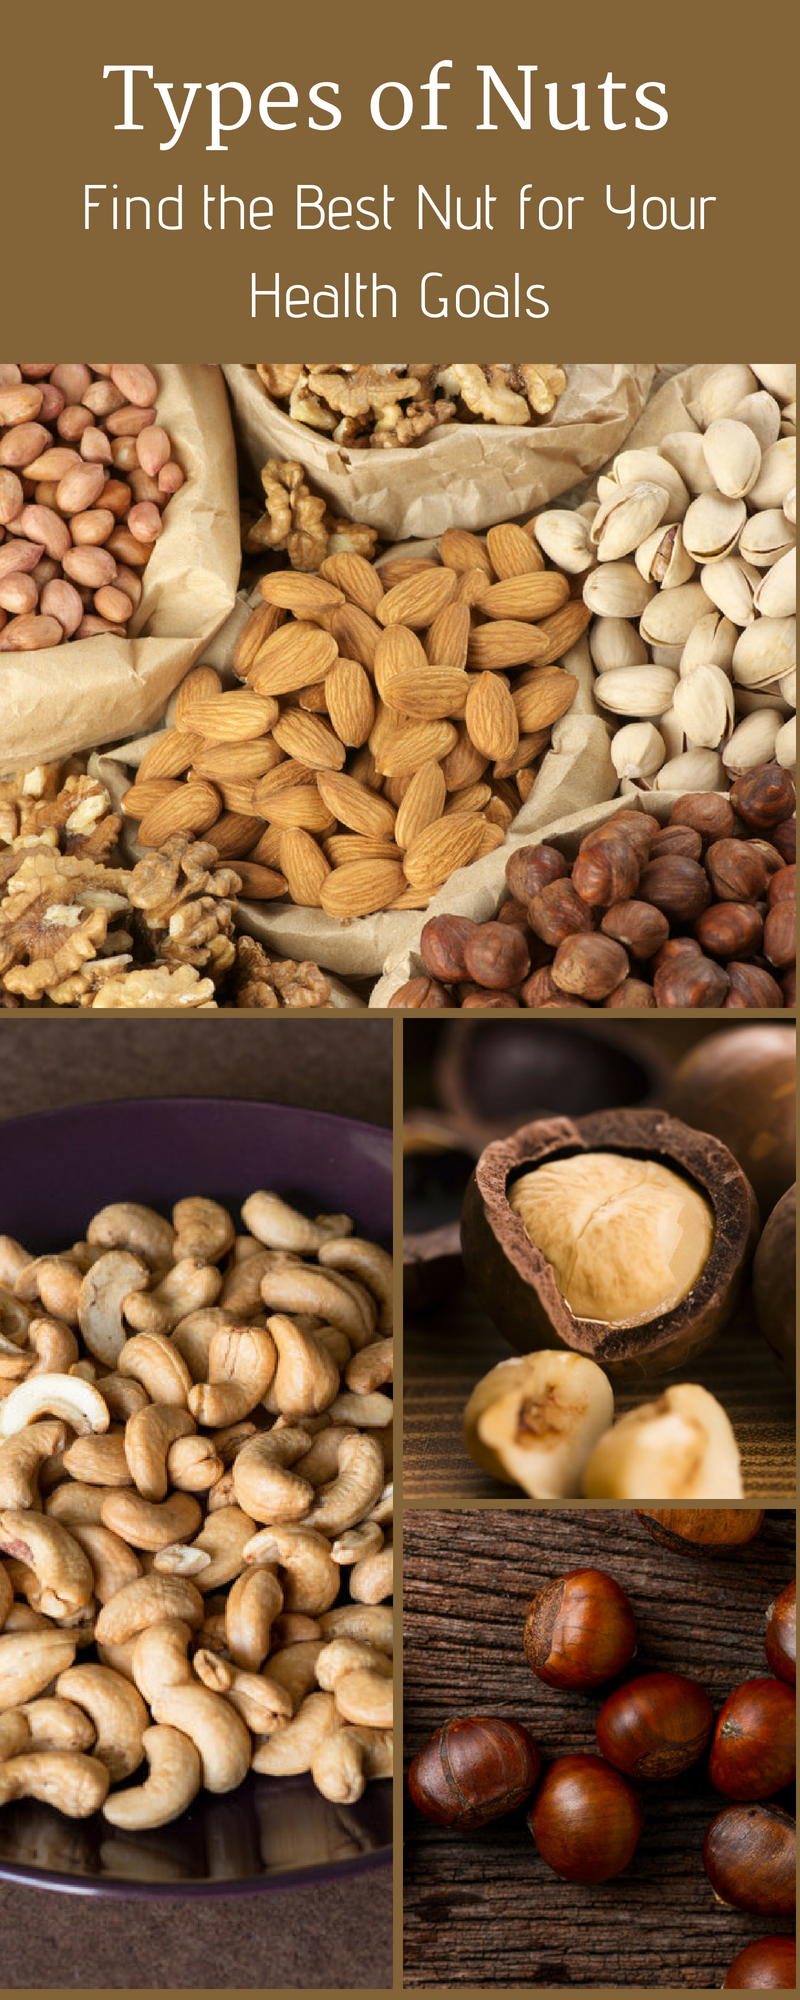 of Nuts – Find the Best Nut for Your Health Goals Nuts are powerful for health - but which one is best? In this post, we look at the various types of nuts and consider the differences between them.Nuts are powerful for health - but which one is best? In this post, we look at the various types of nuts and consider the differences between them.